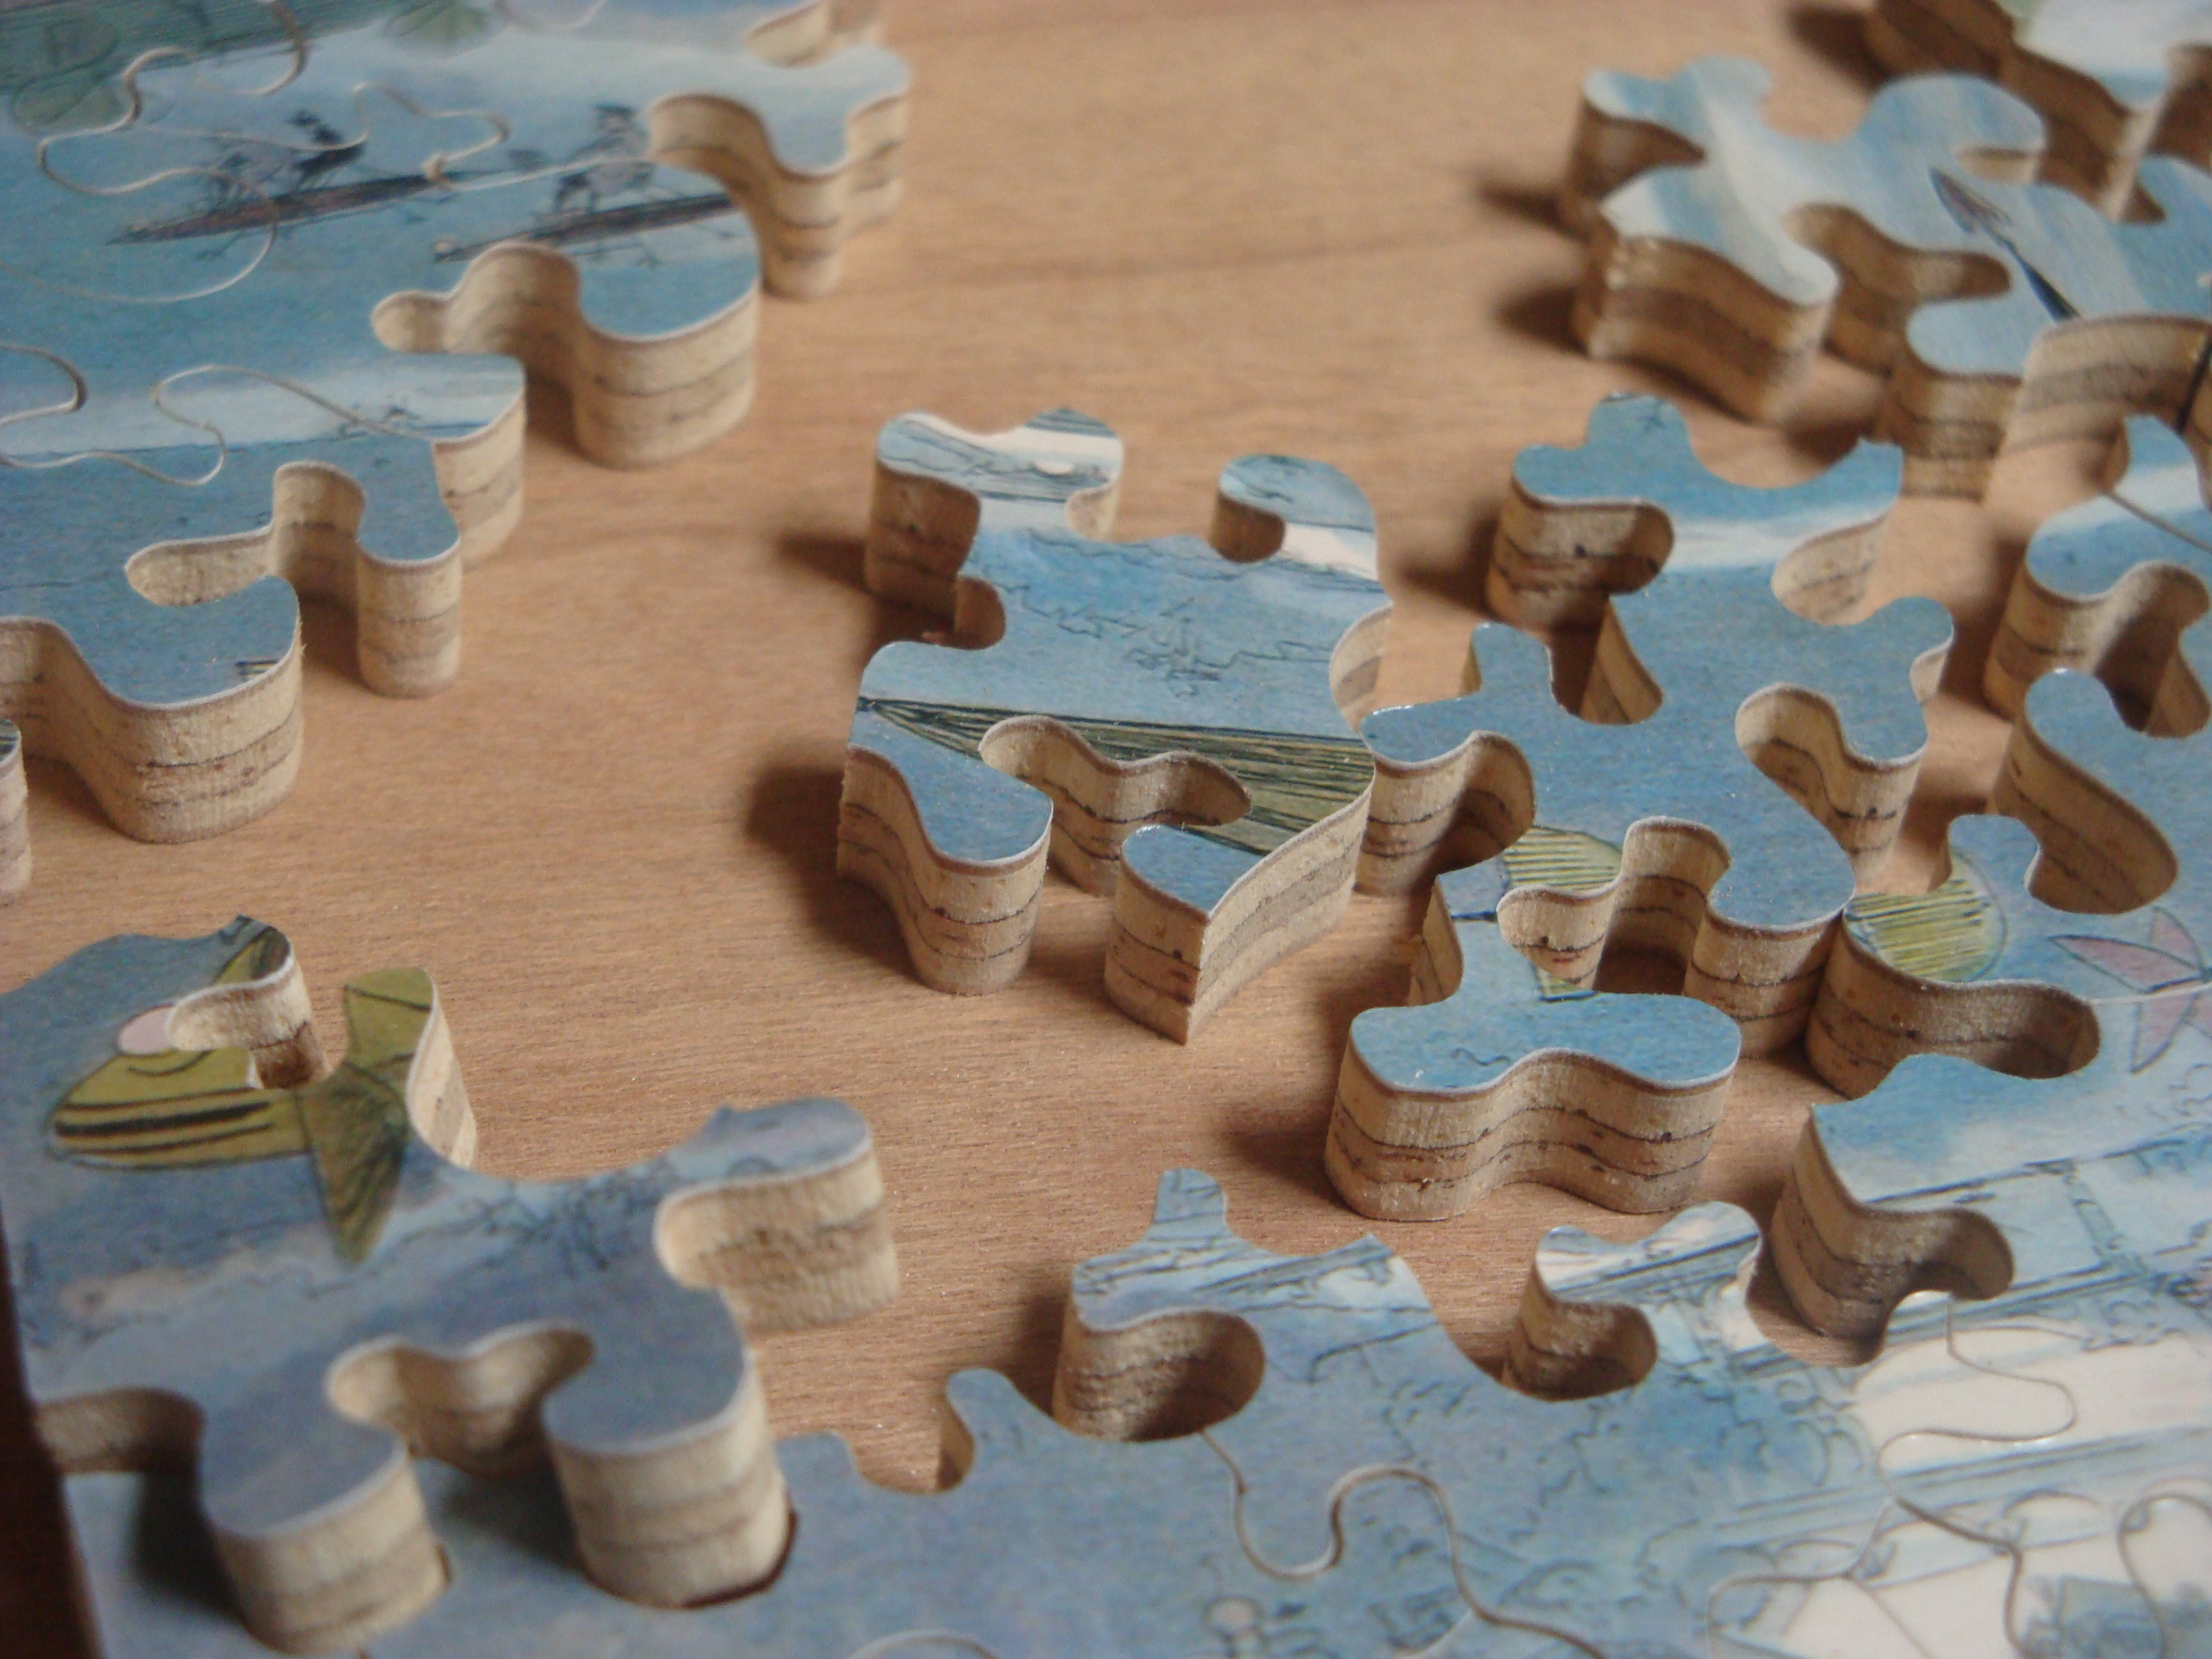 Jigsaw puzzle - Wikipedia, the free encyclopedia